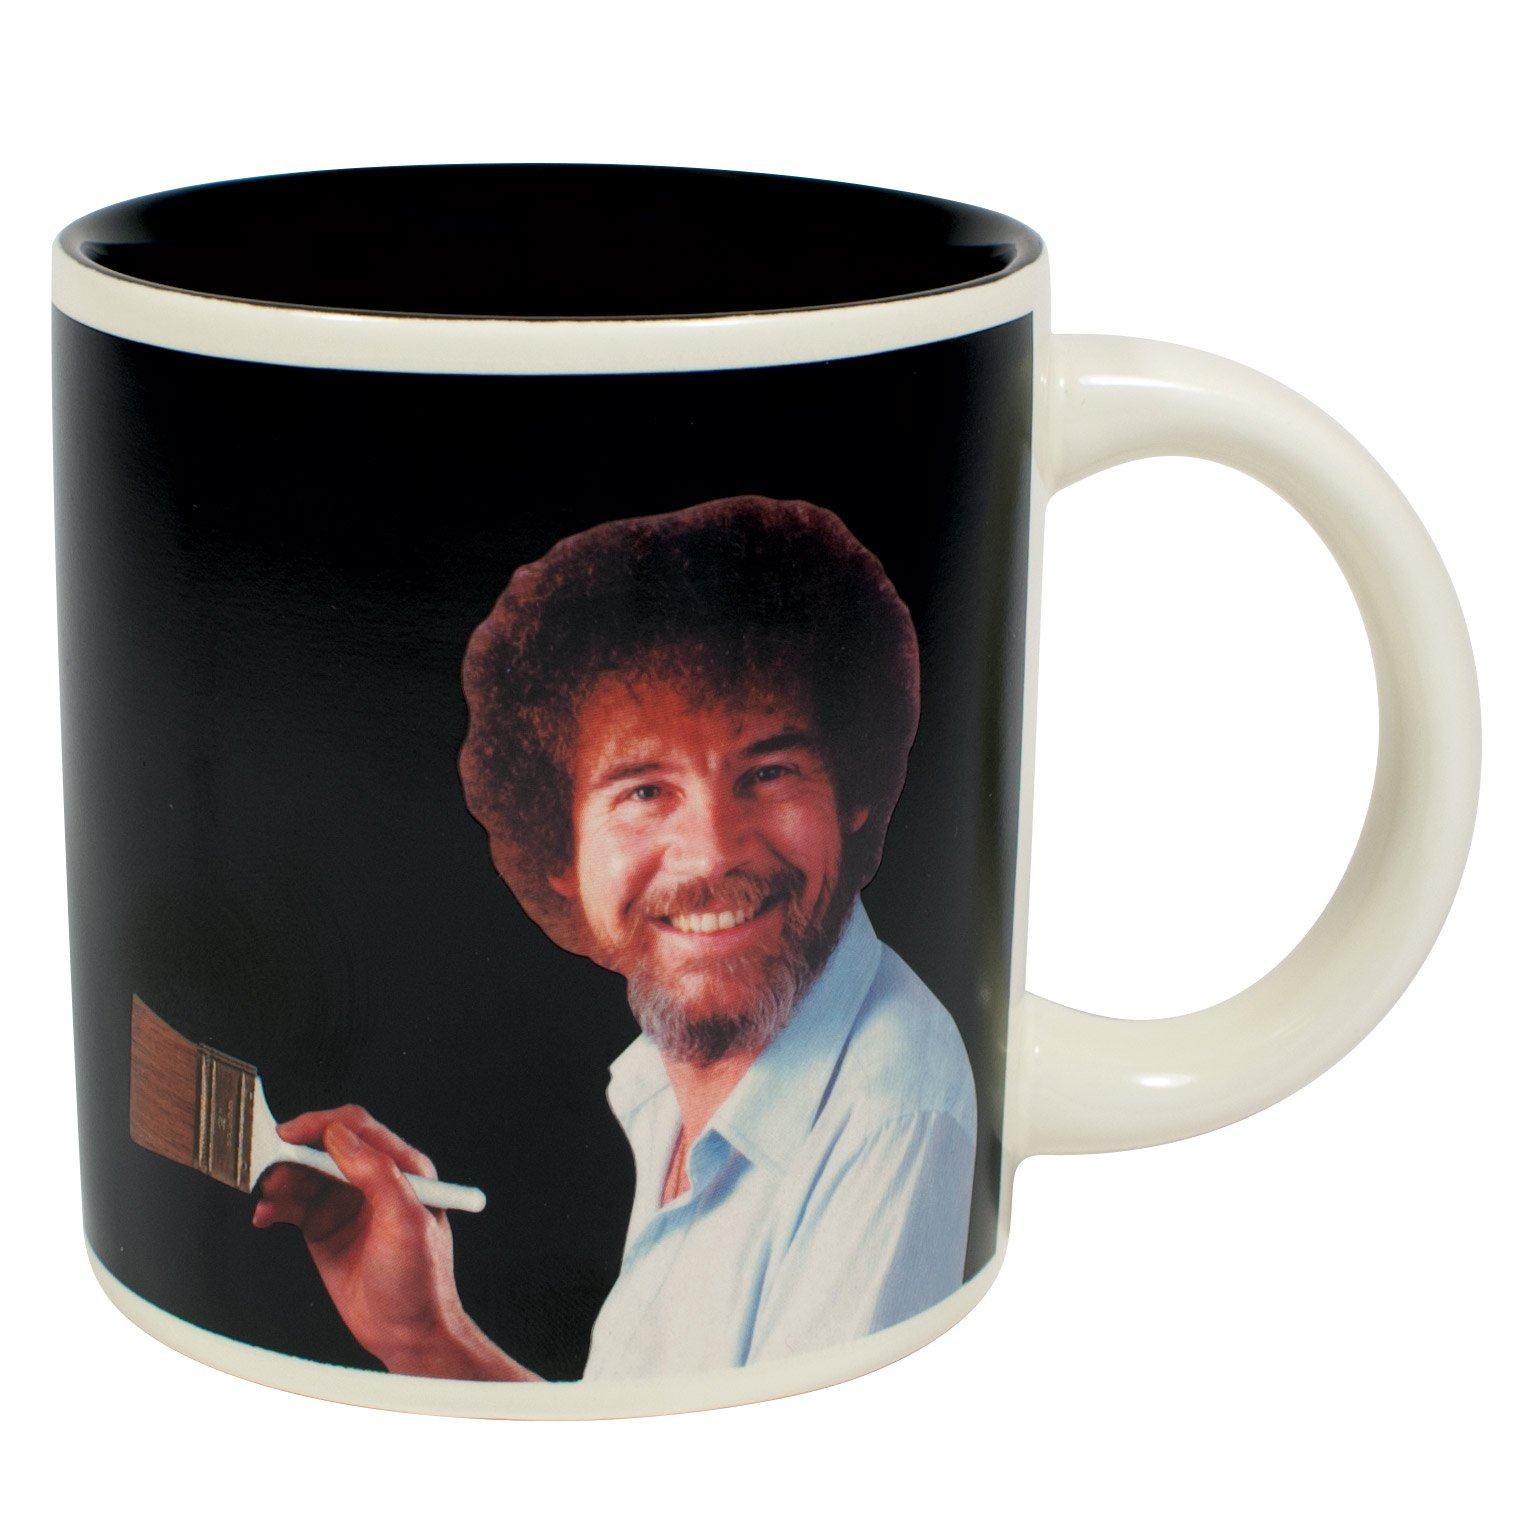 Bob Ross Heat Changing Mug - Add Coffee or Tea and a Happy Little Scene Appears - Comes in a Fun Gift Box by The Unemployed Philosophers Guild (Image #2)